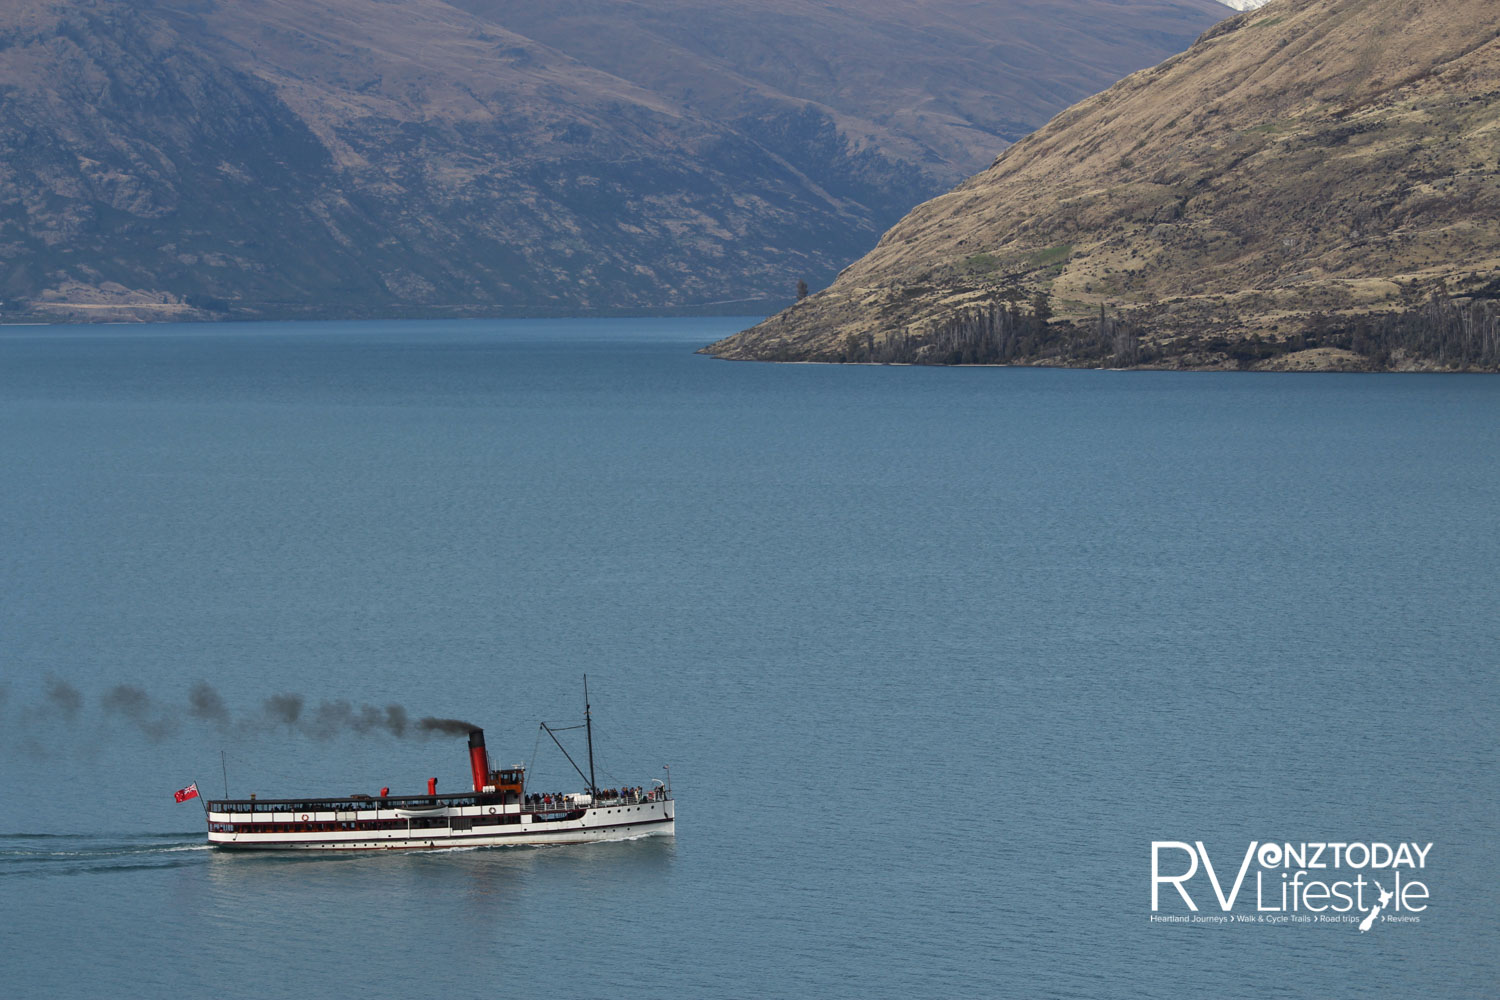 Think Queenstown and one of the first things to come to mind is the grand old 'Lady of the Lake', the Earnslaw. She began life as a working ship but now is very much a gracious work of art